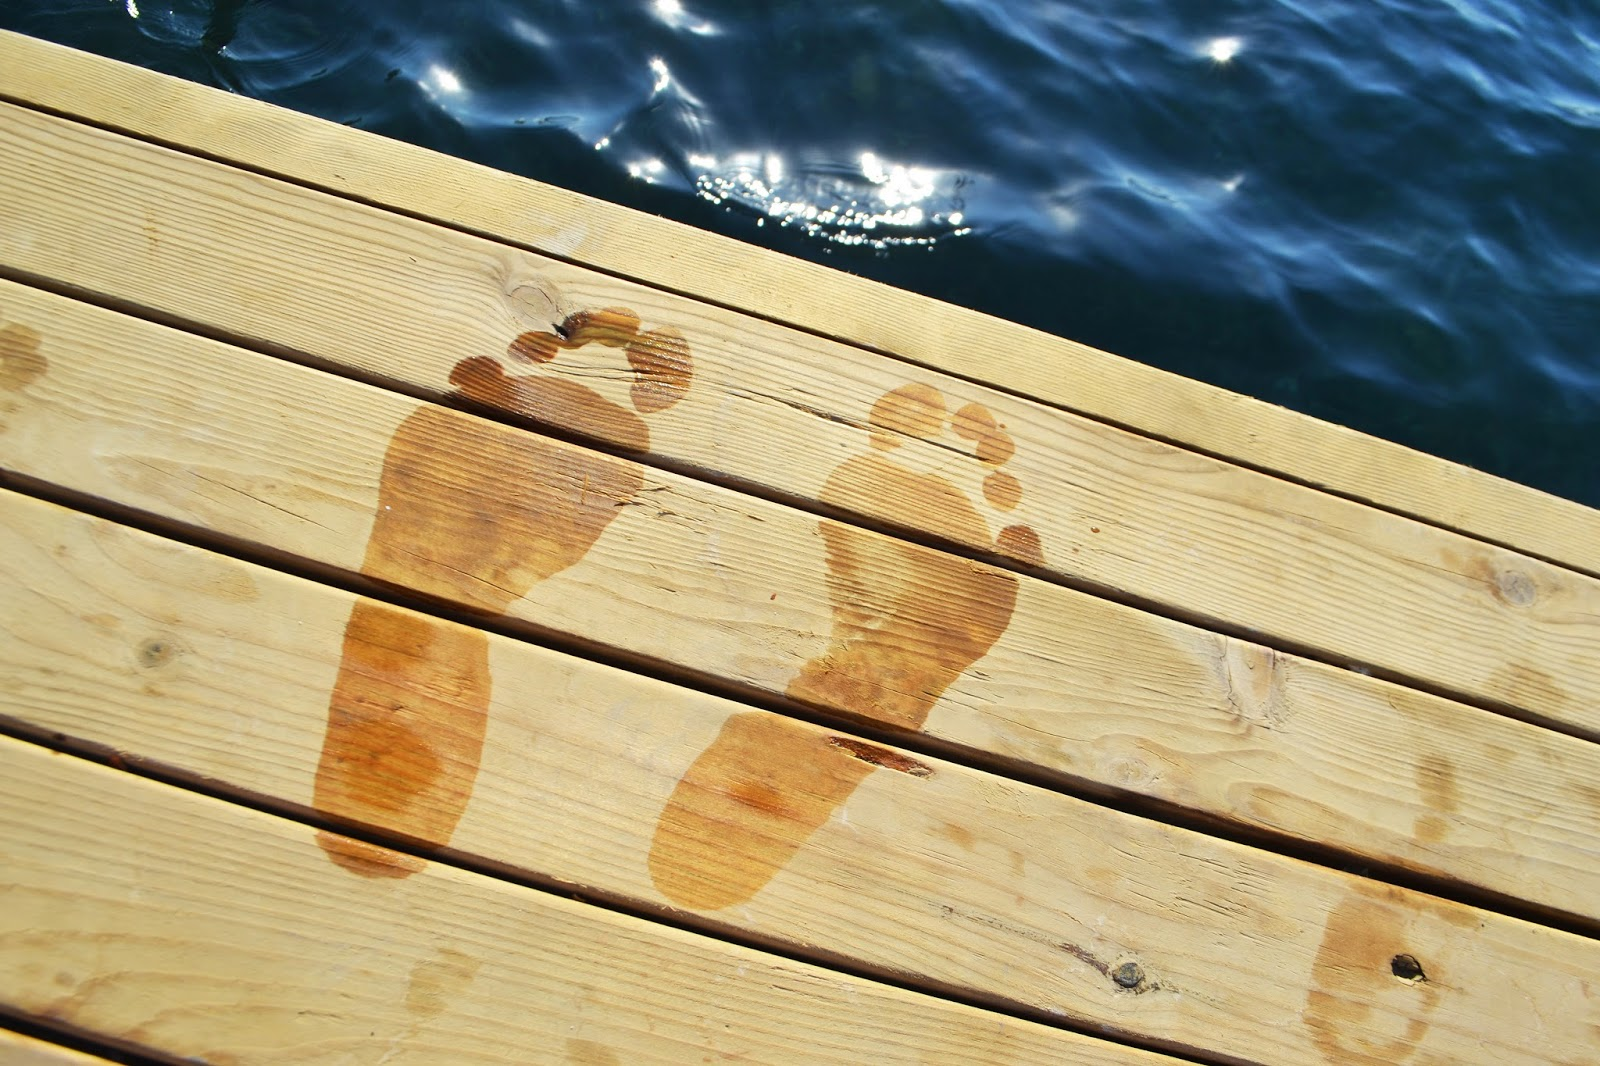 wet footprints on a wooden jetty